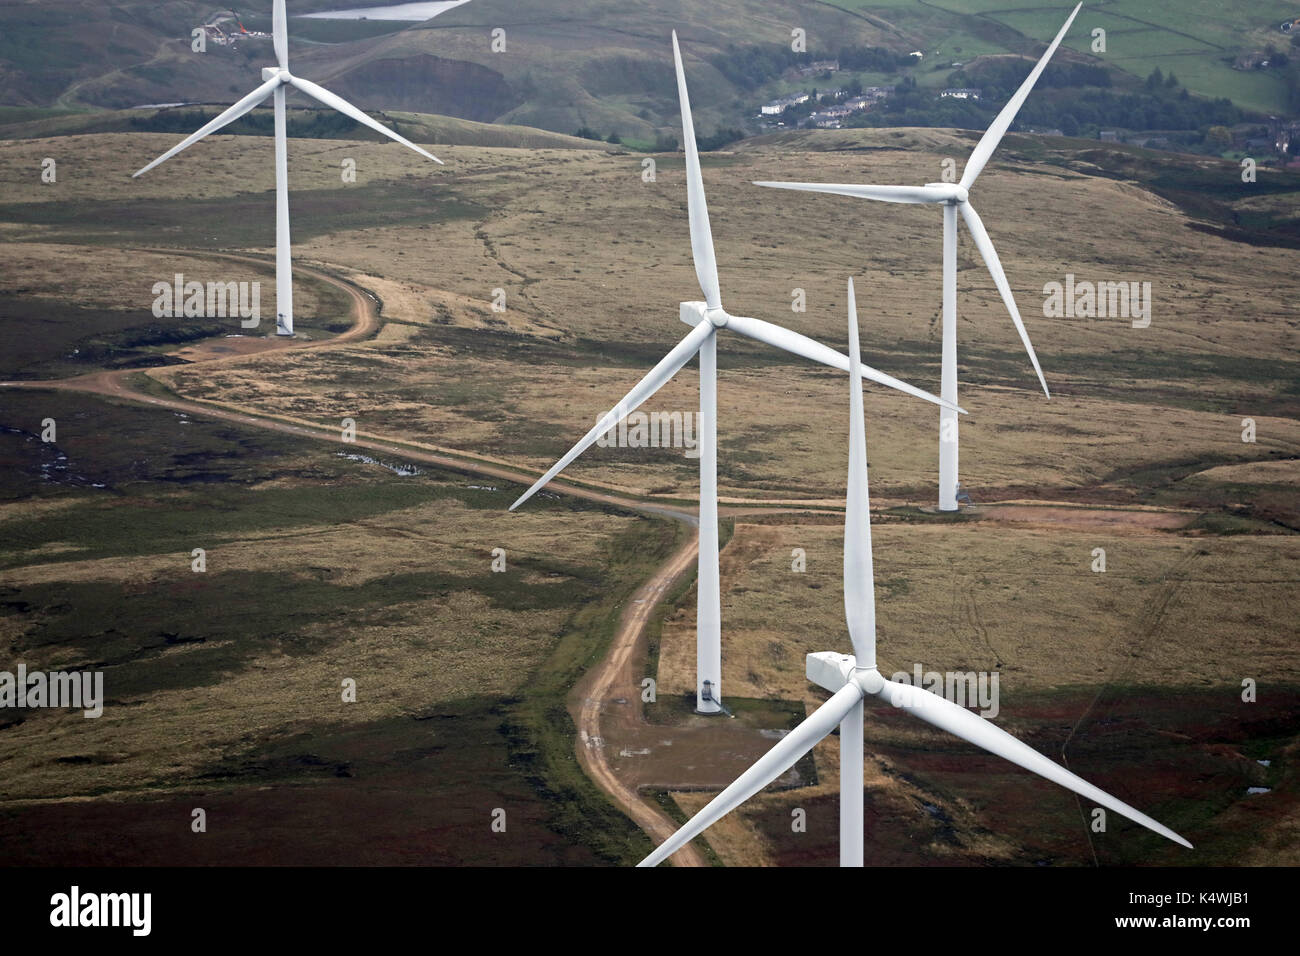 aerial view of four wind turbines on the Pennines, UK - Stock Image